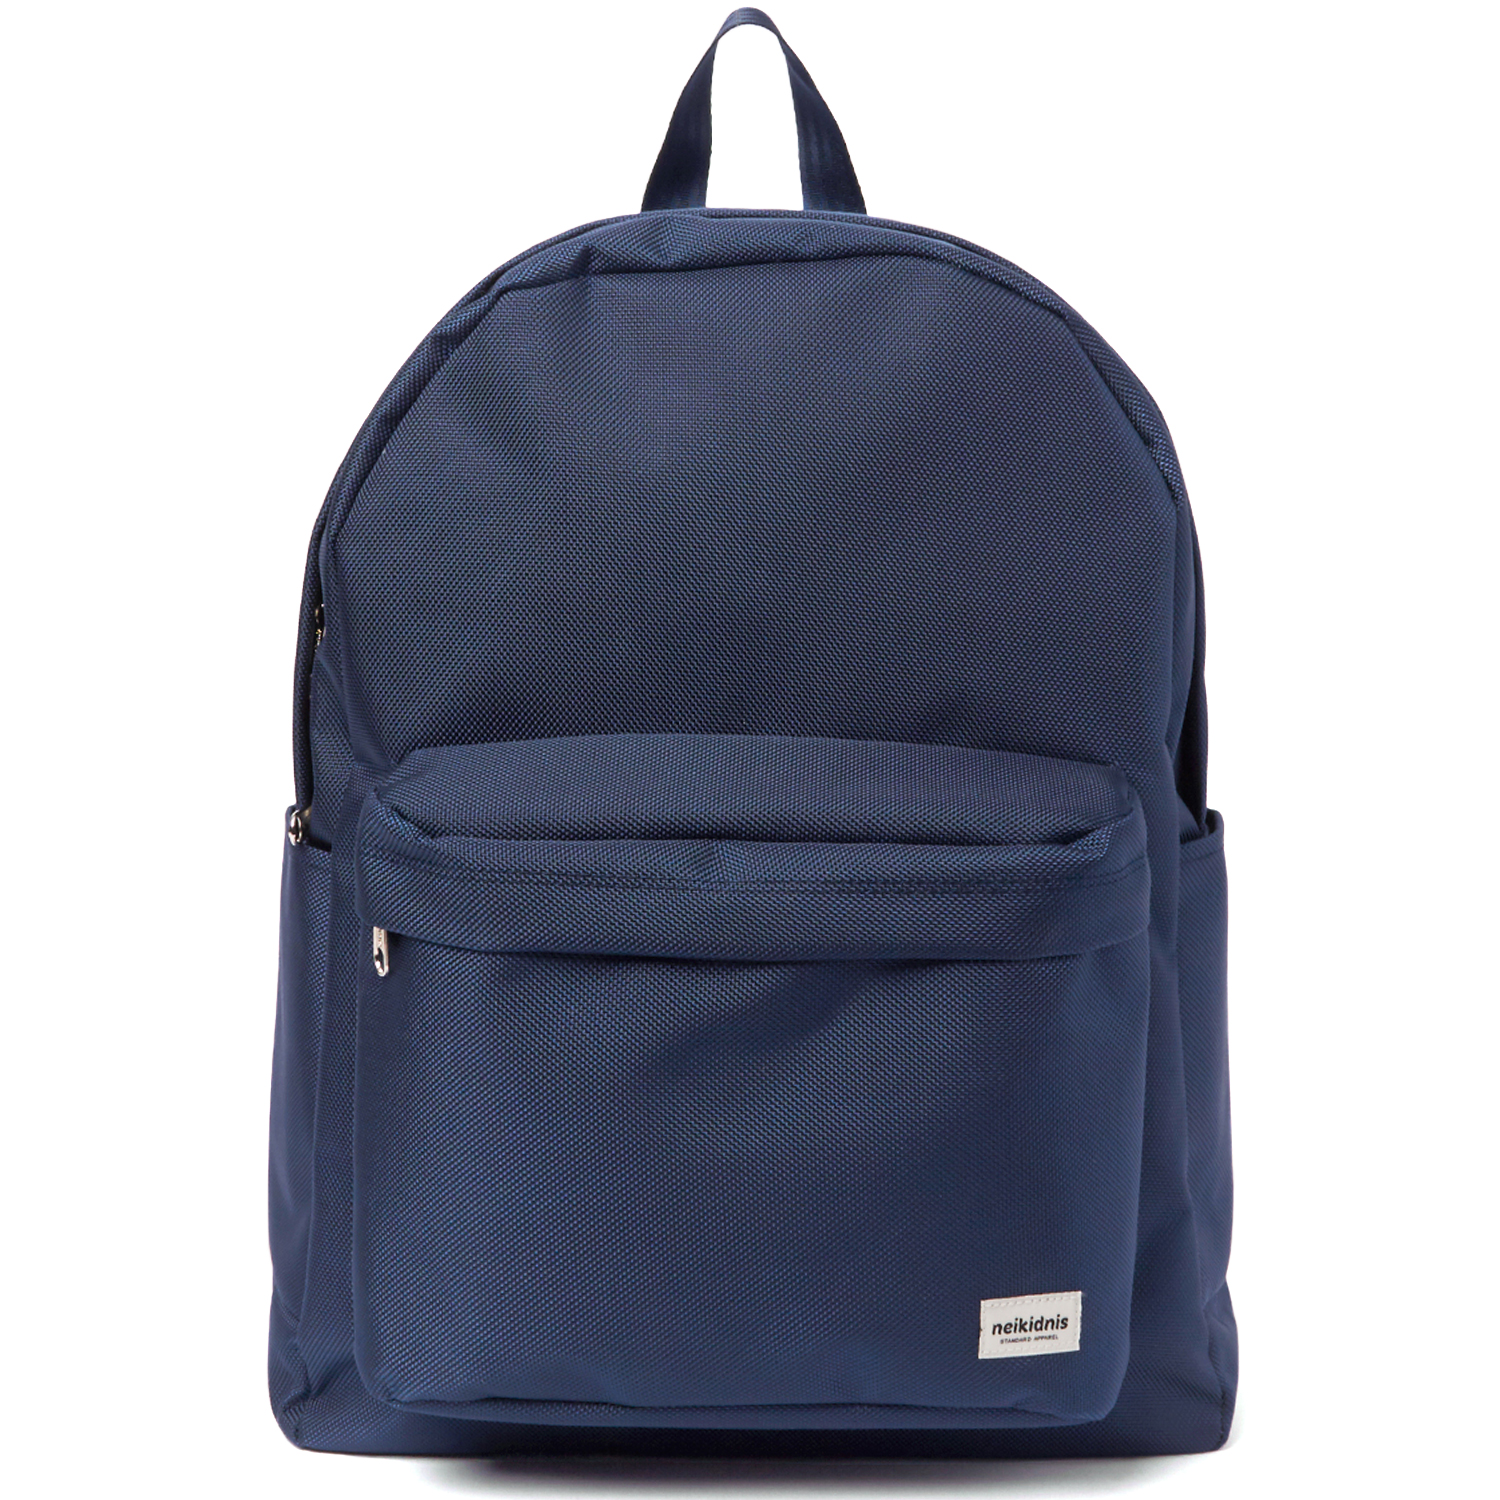 [80% SALE] 1680D BALLISTIC BACKPACK / NAVY